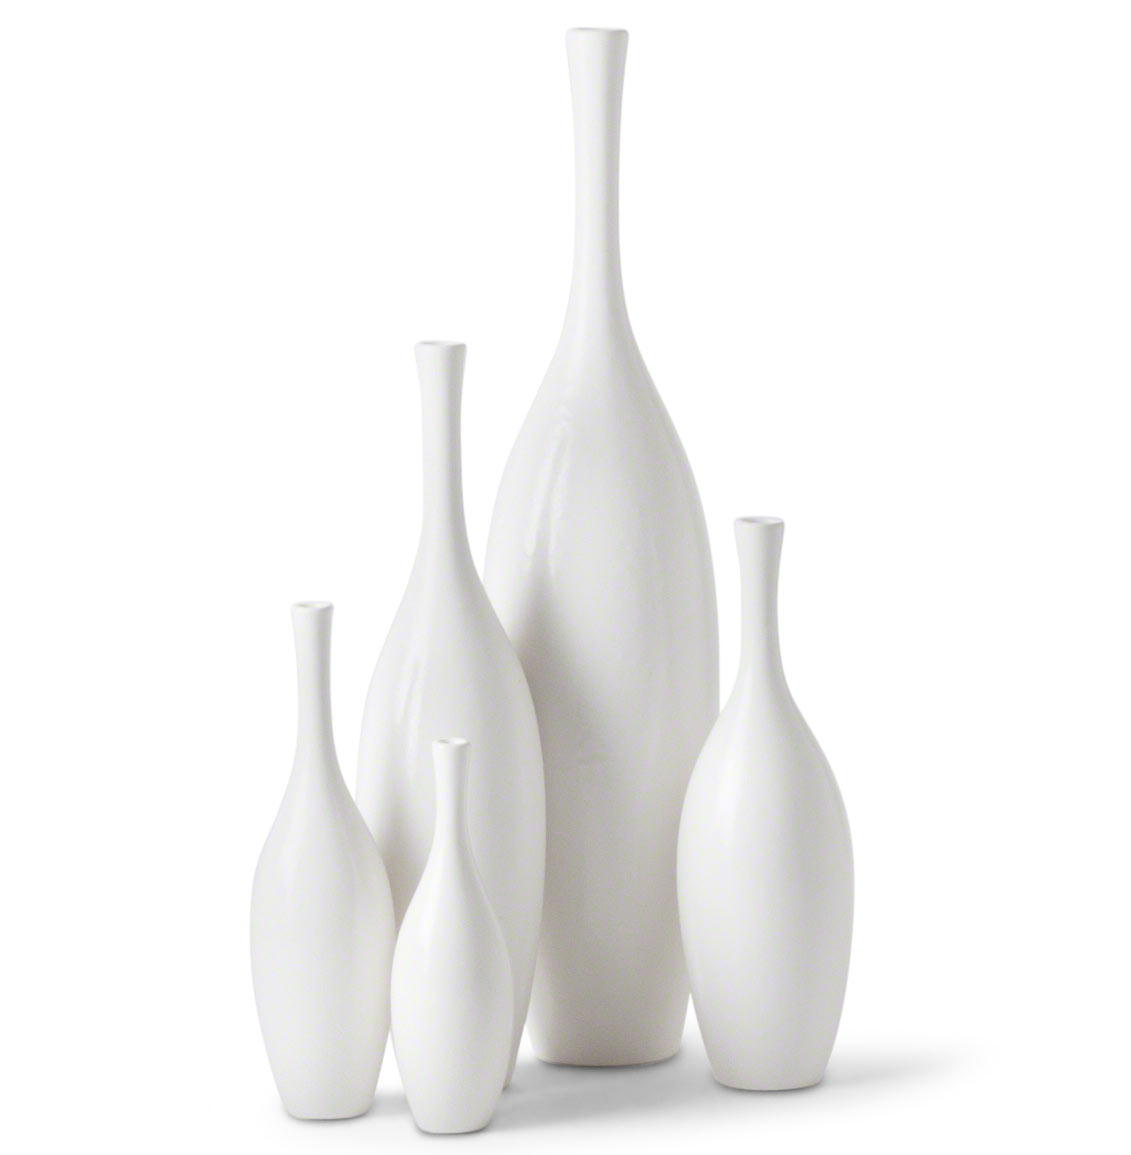 Designer Decorative Vases - Eclectic Decorative Vases | Kathy Kuo Home